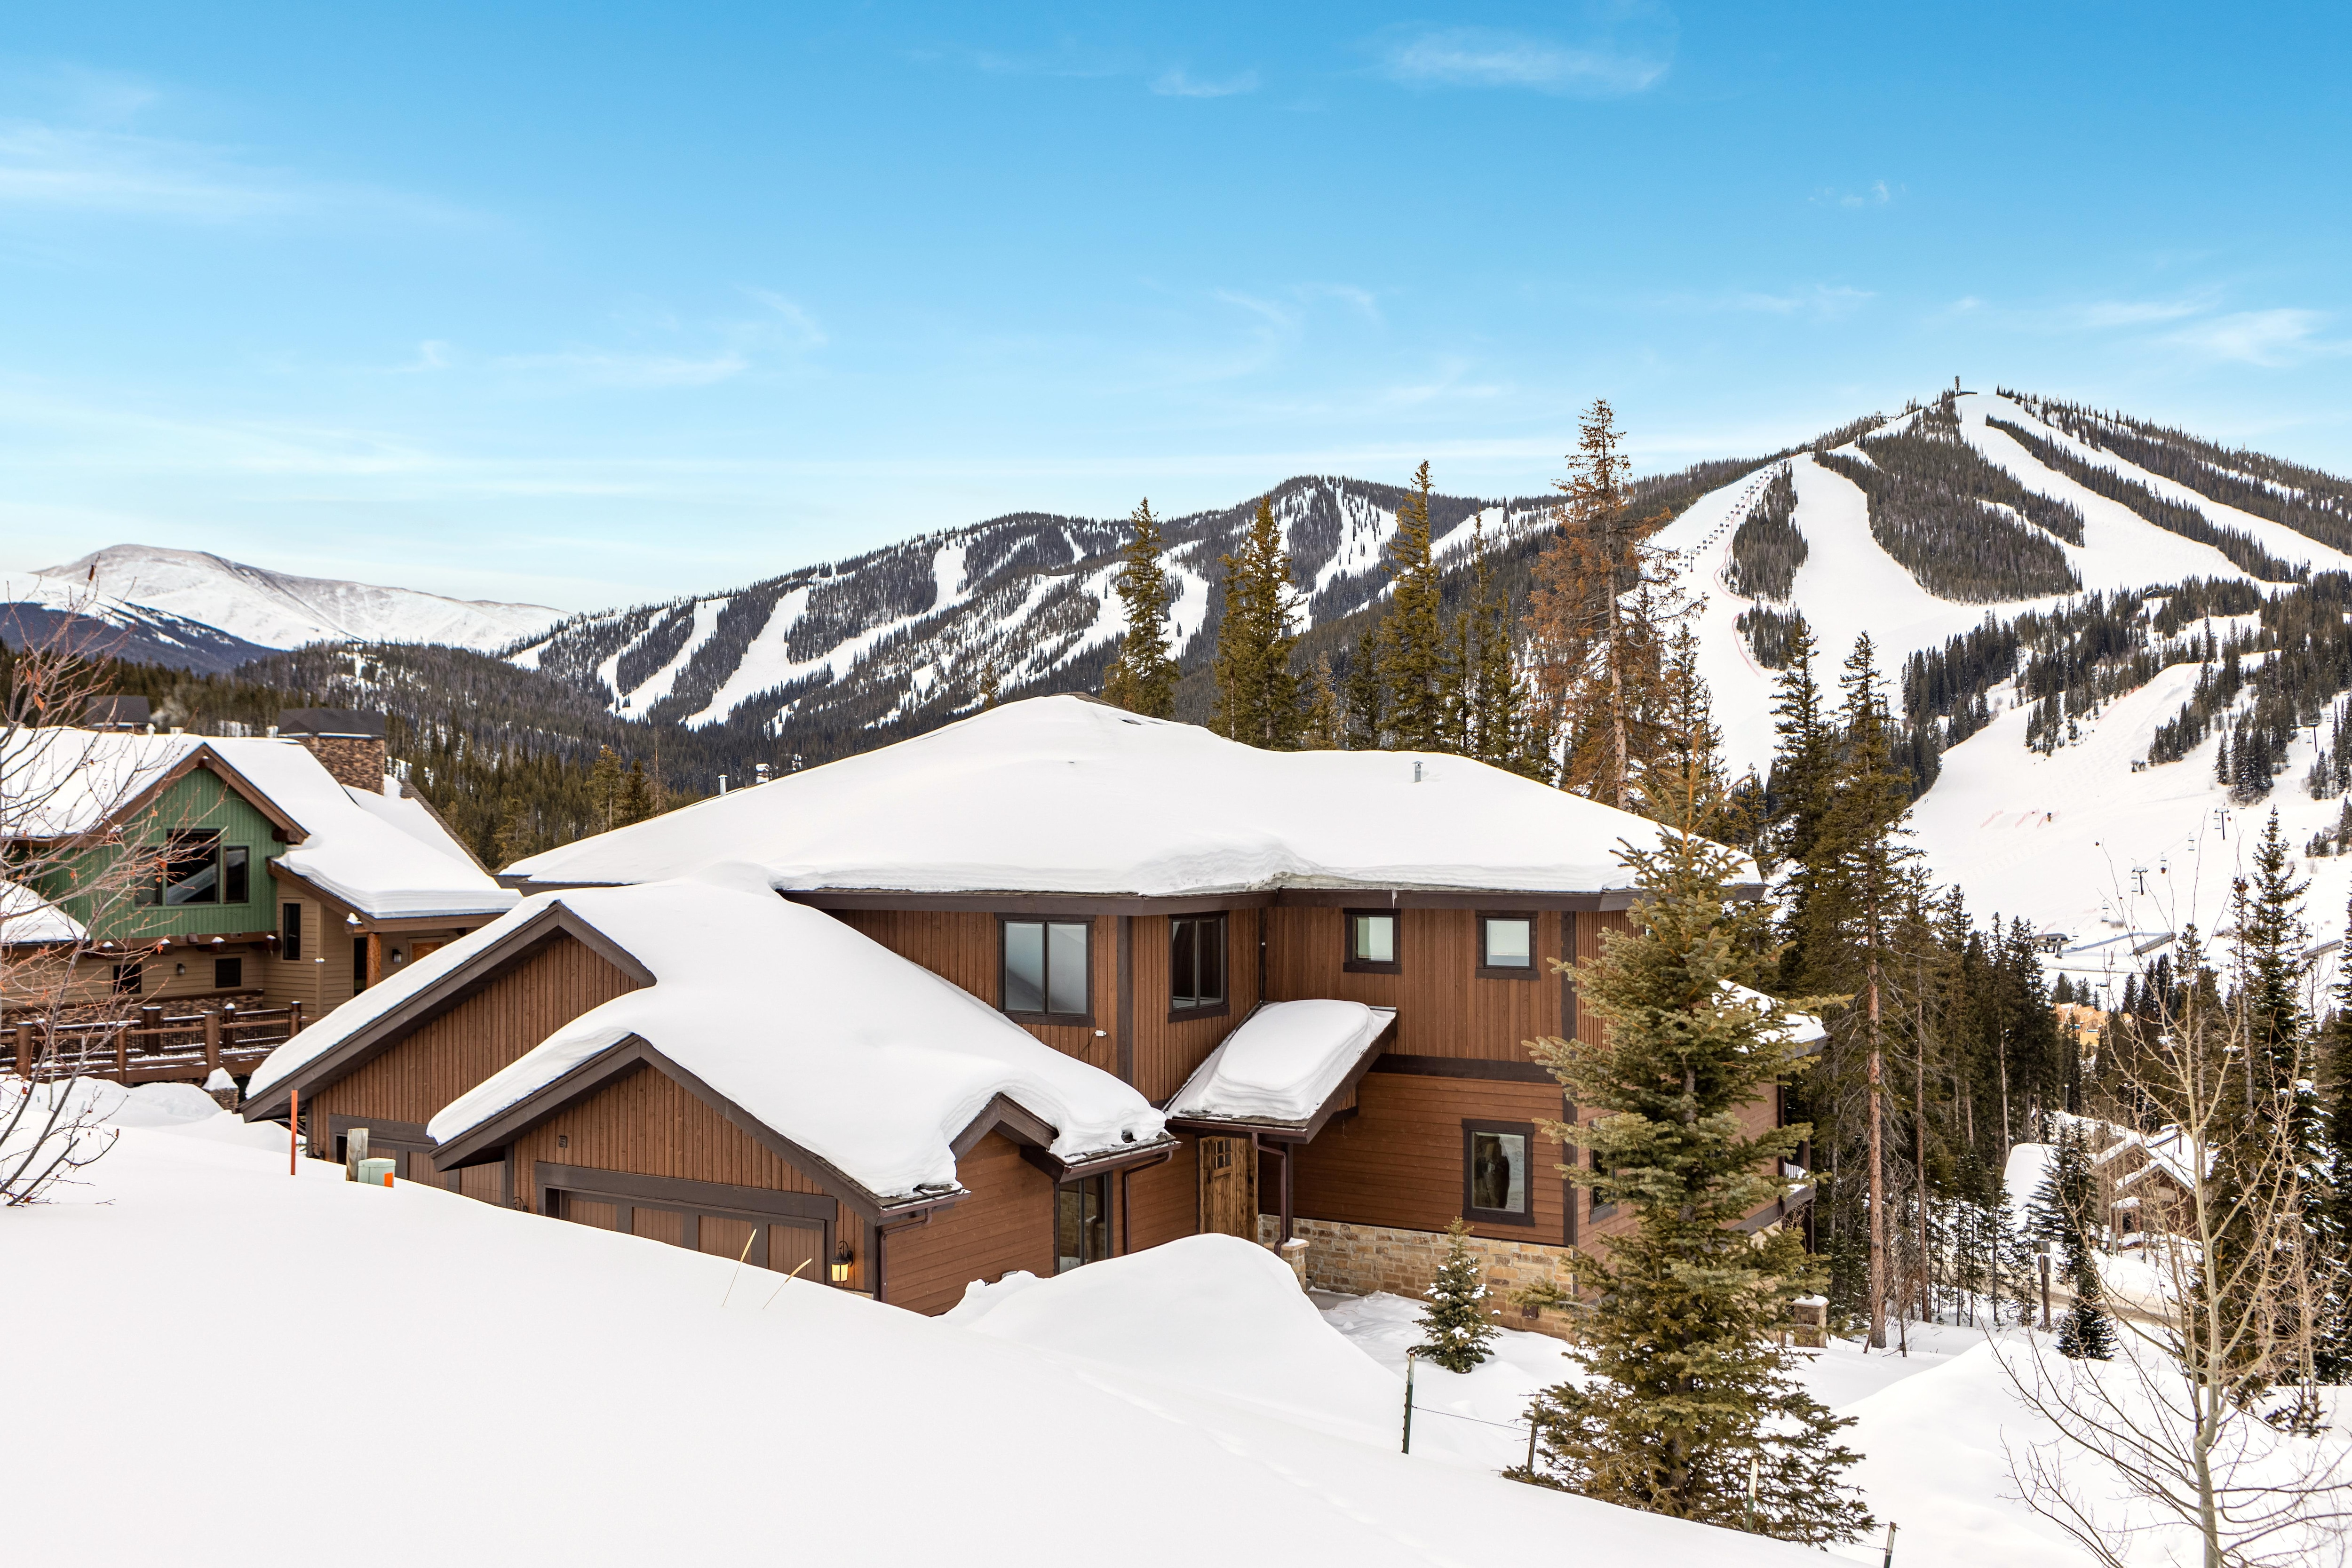 Your 3-level getaway is a 2-minute drive to Winter Park Resort and 10 minutes to Fraser.